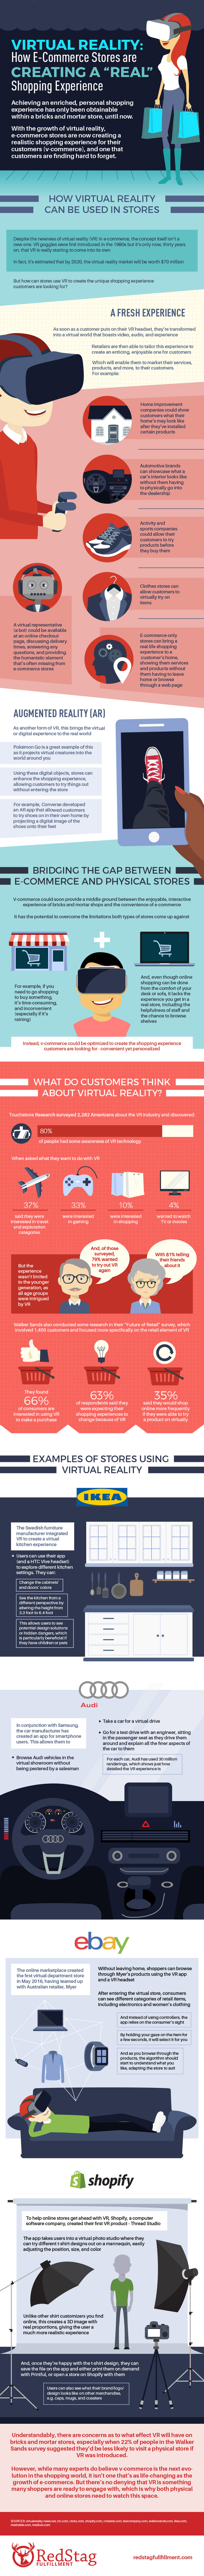 eCommerce Revolutionized Shopping and It's Going to Do It Again with Virtual Reality [Infographic] | Social Media Today